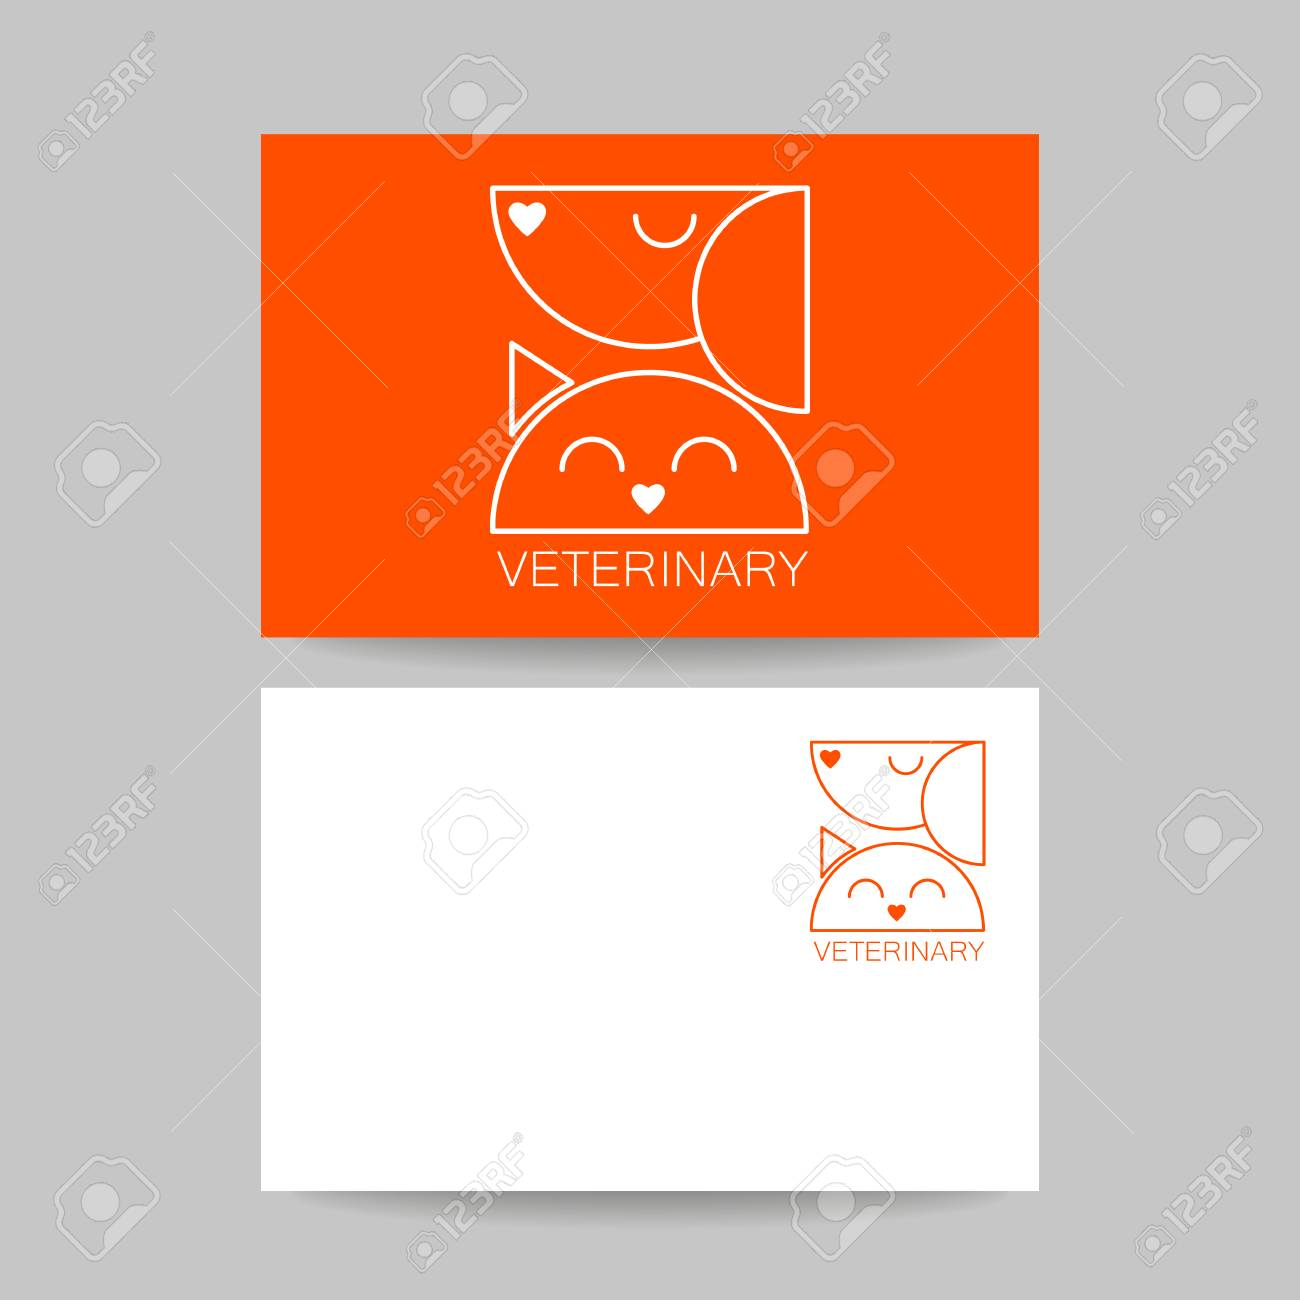 Veterinary Clinic. Business Card Template. Idea For Veterinary ...